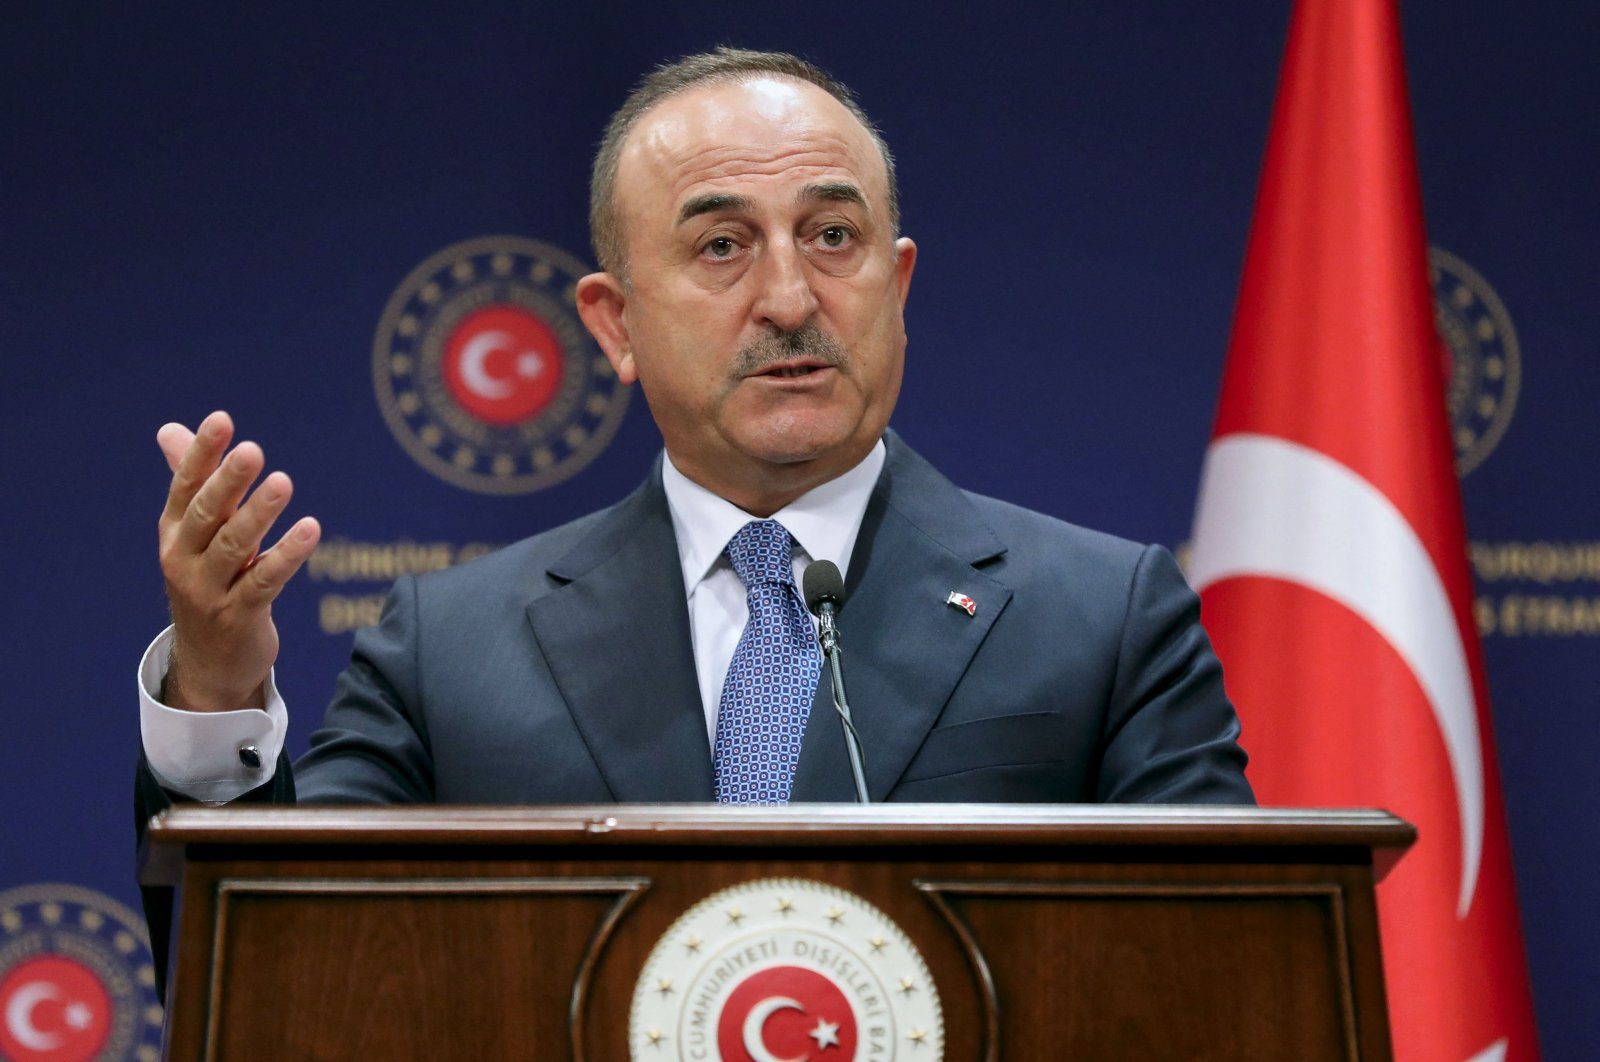 Foreign Minister Mevlüt Çavuşoğlu holds a joint press conference with the Dutch Minister of Foreign Affairs after their meeting in Ankara, Sept. 2, 2021. (AFP File Photo)